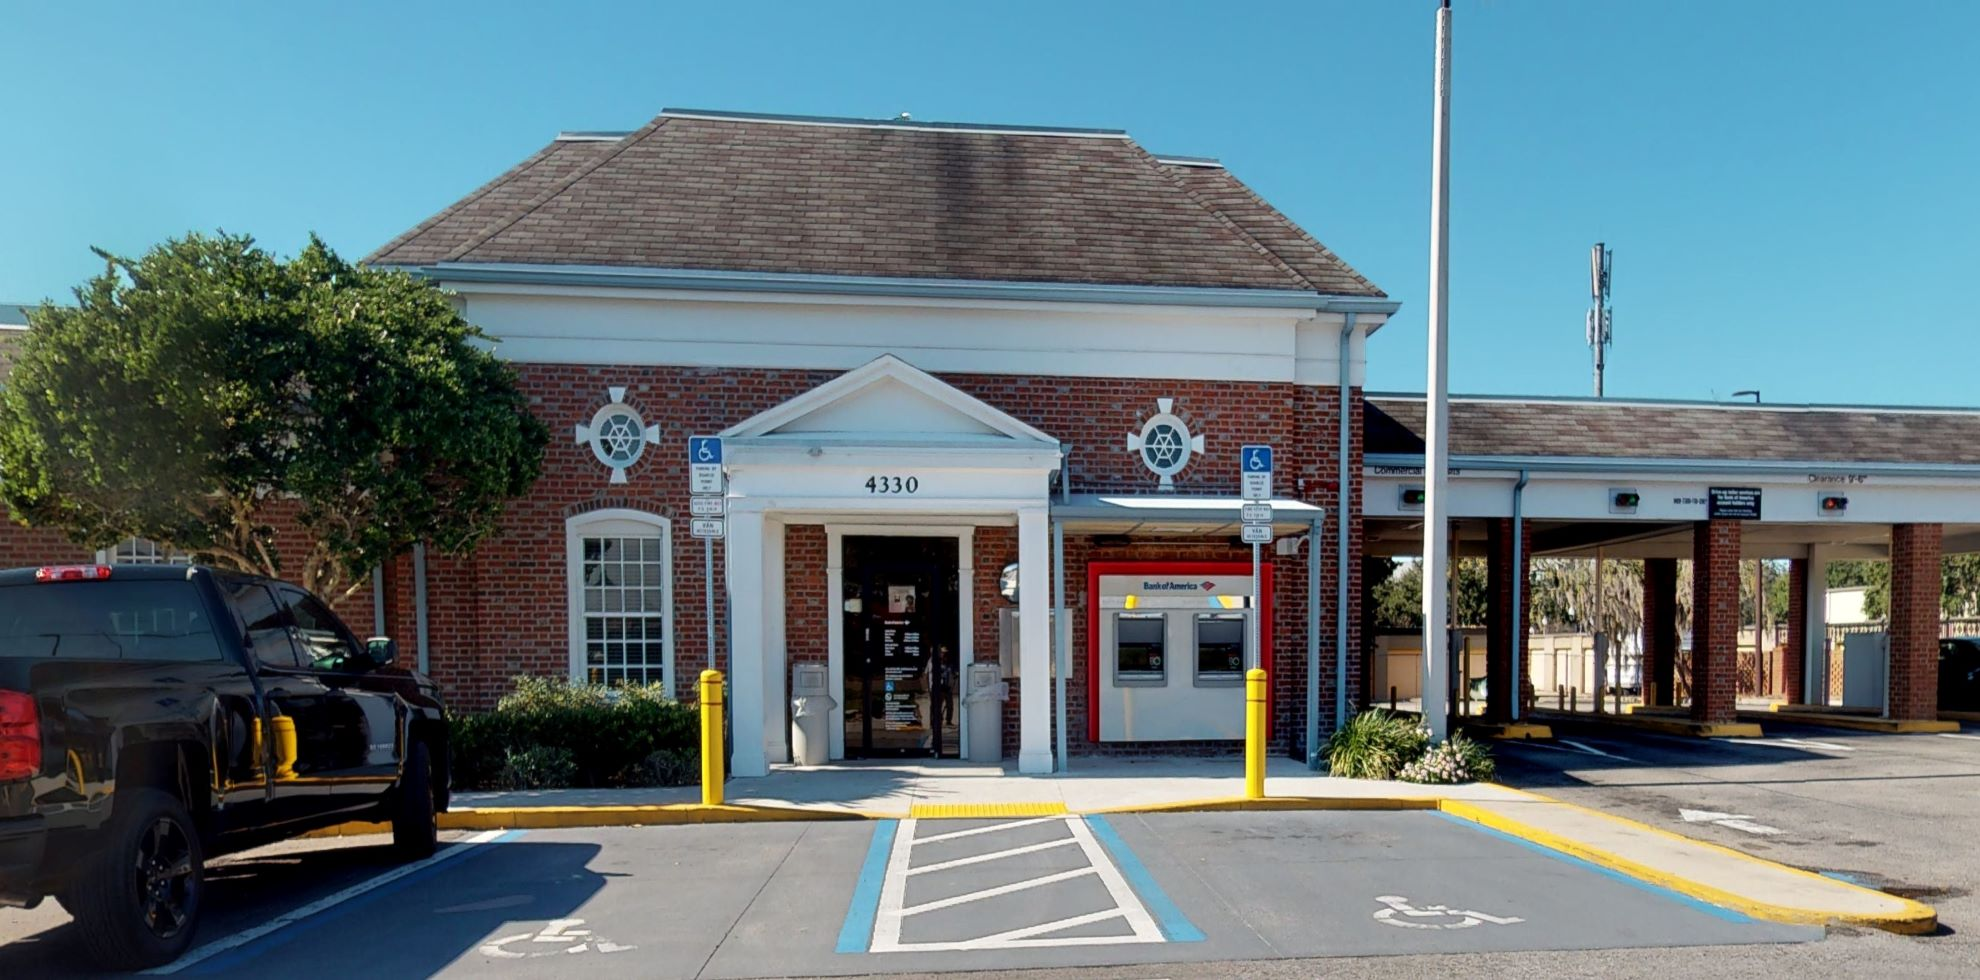 Bank of America financial center with drive-thru ATM | 4330 US Highway 98 N, Lakeland, FL 33809